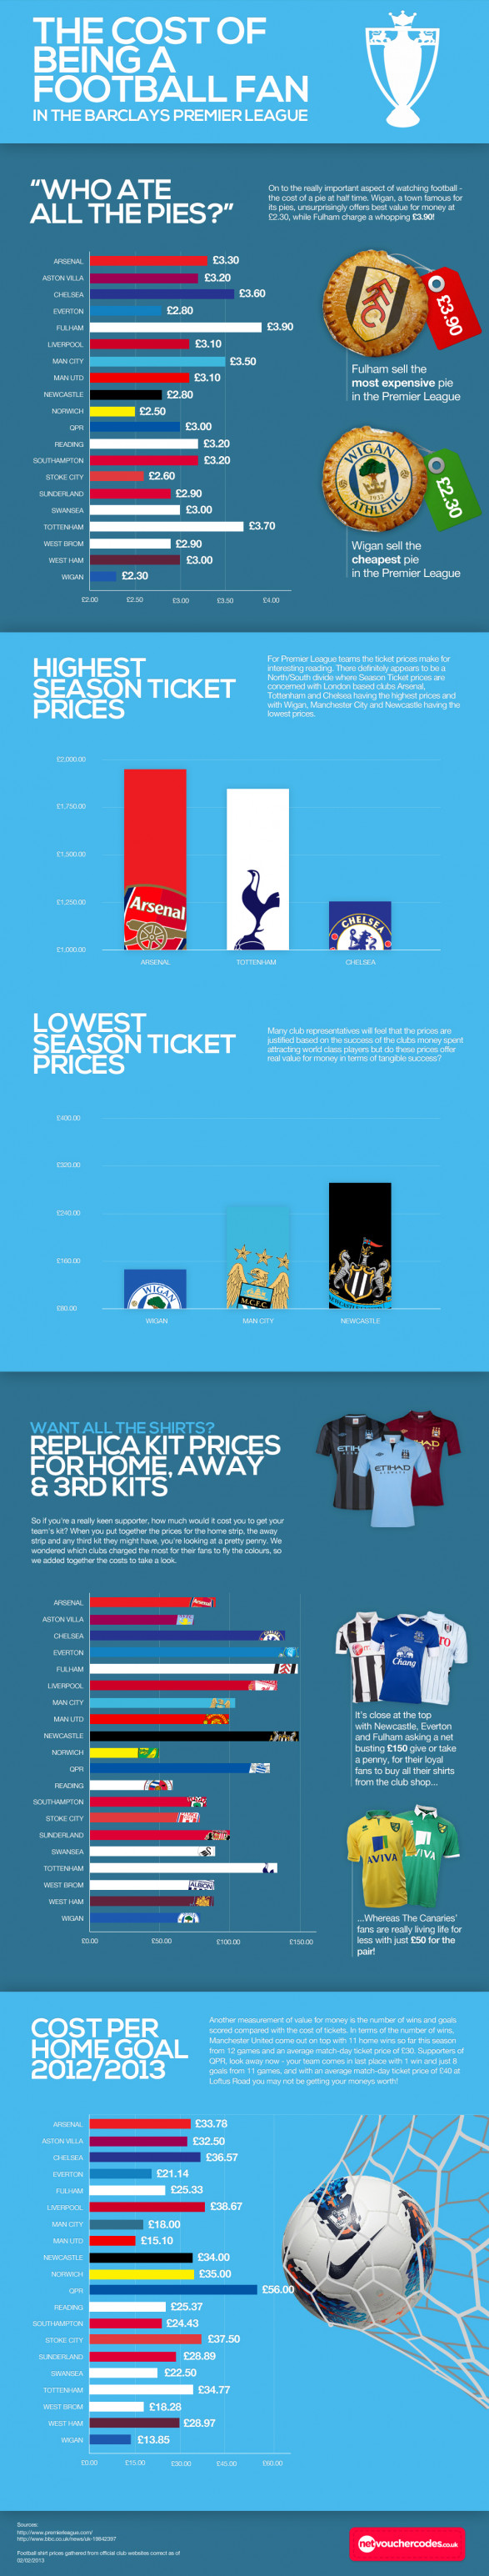 The Cost of Being a Football Fan